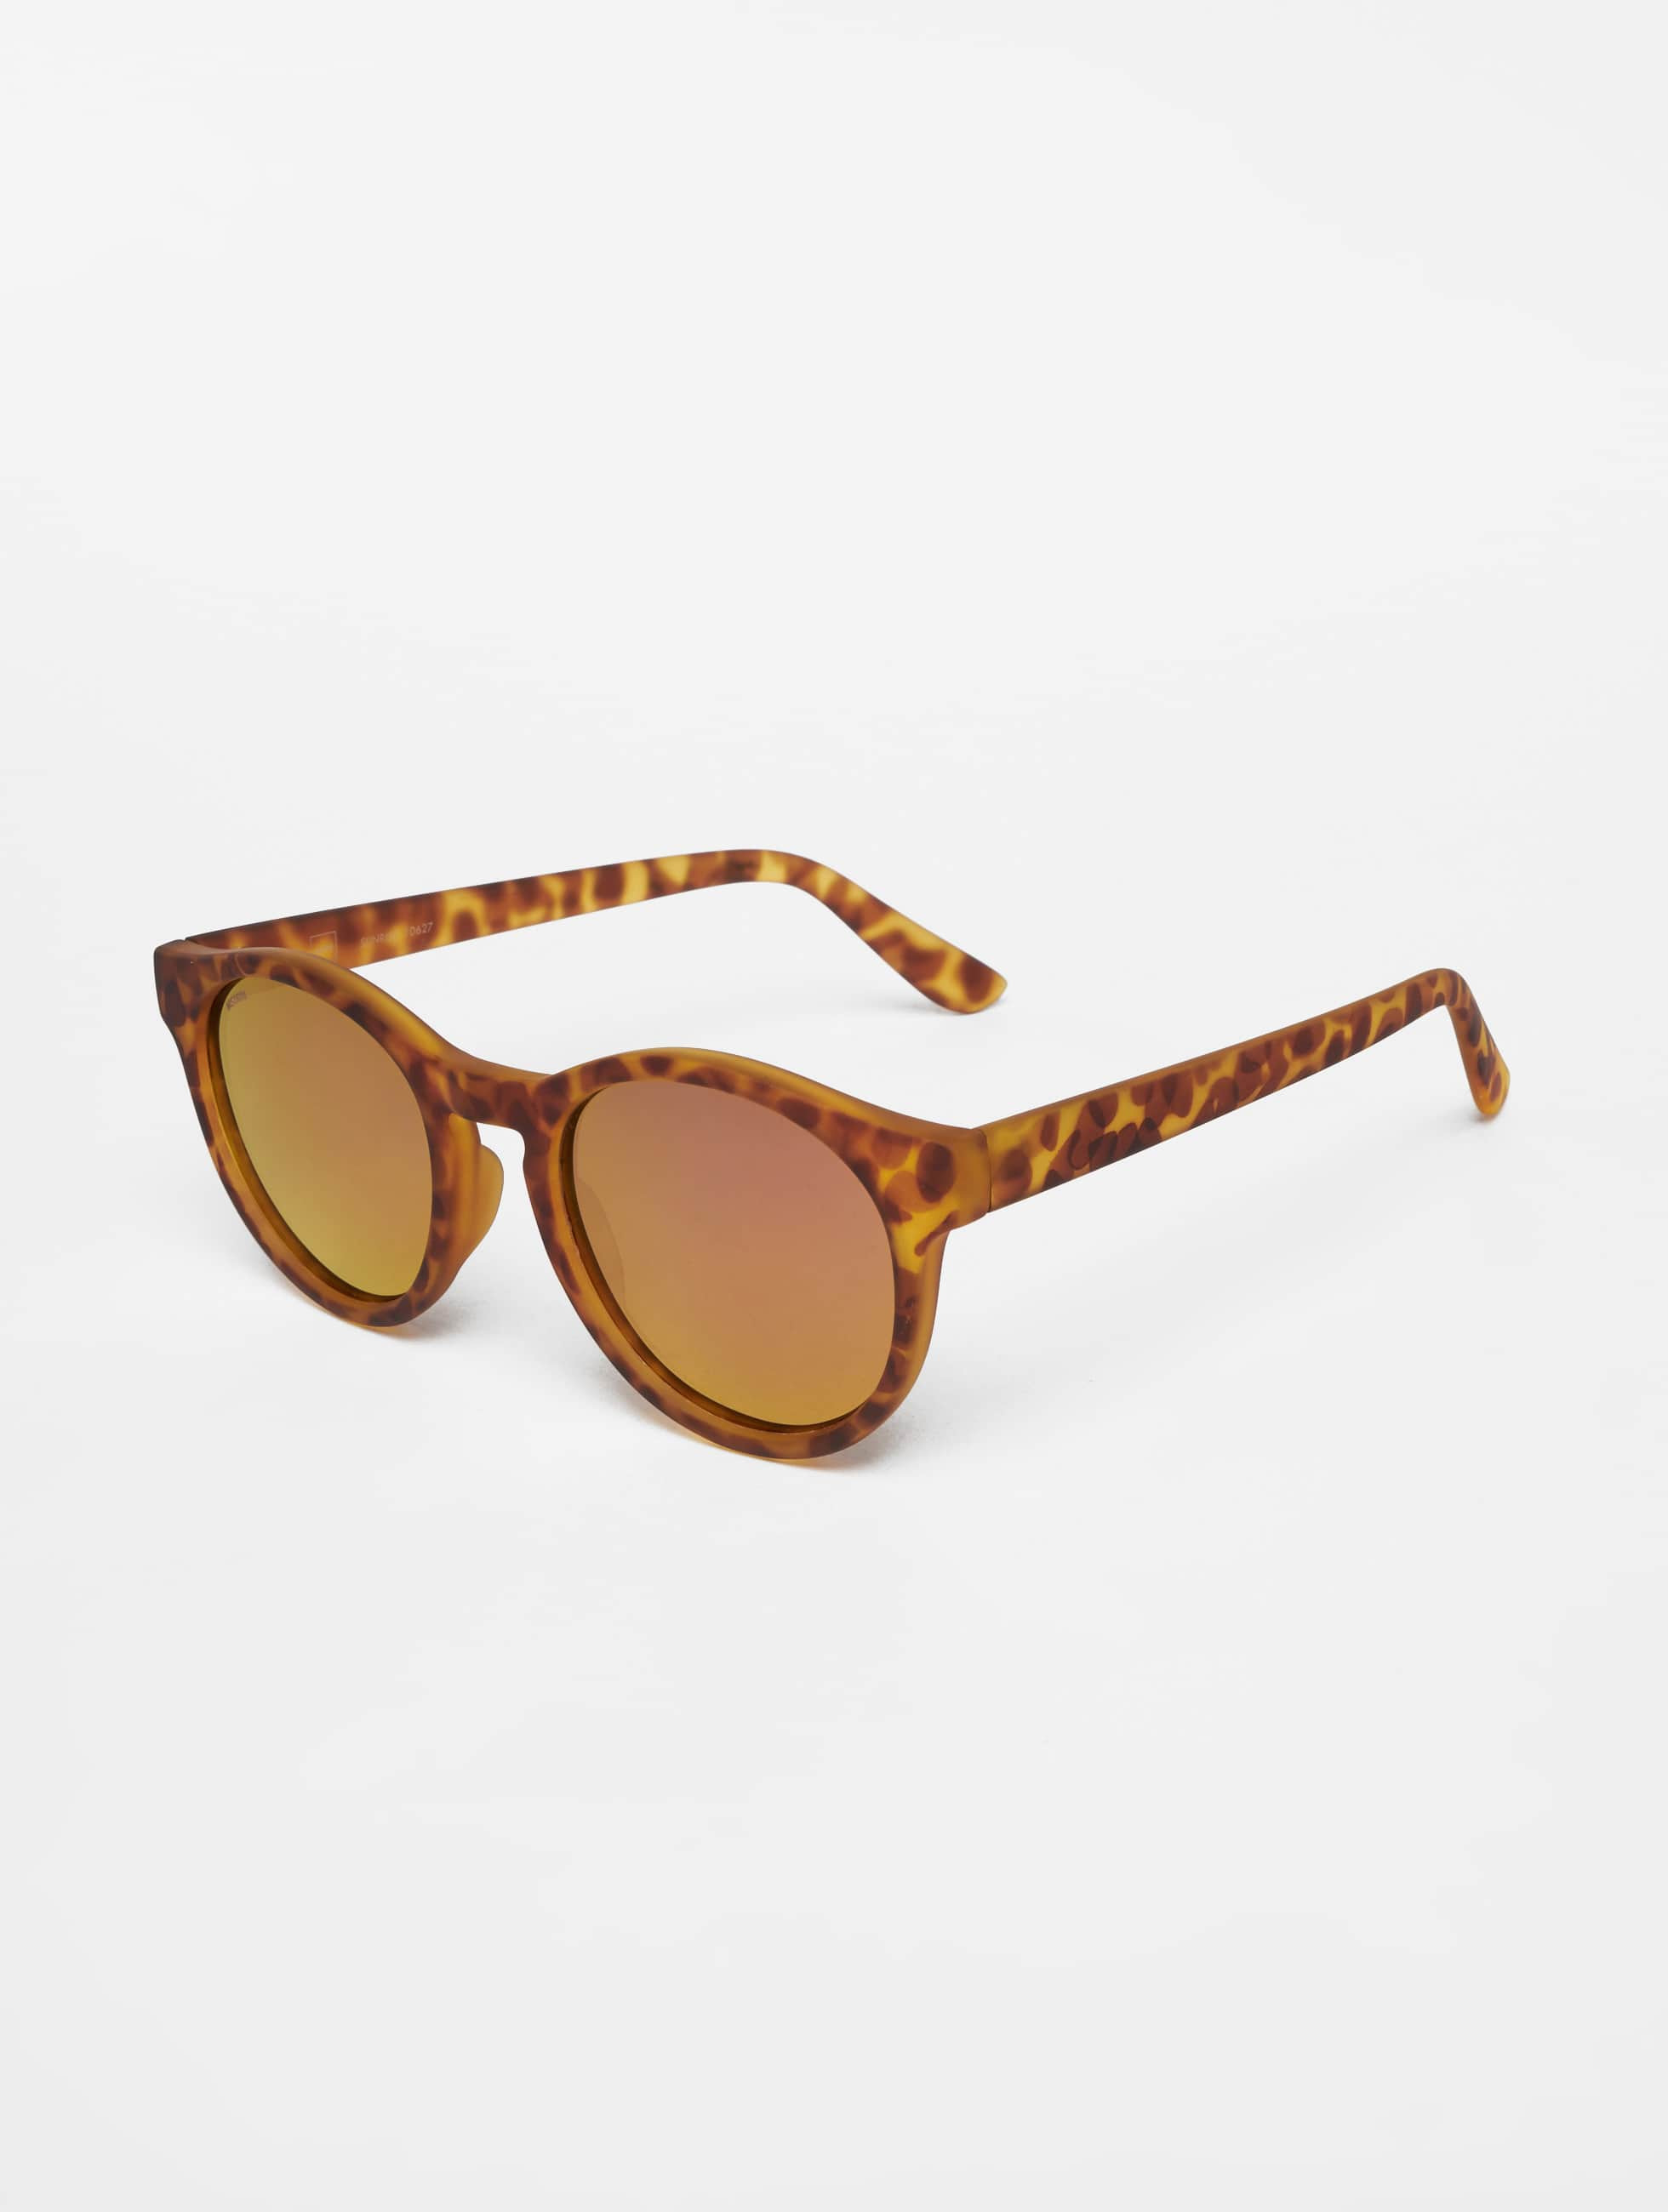 MSTRDS Sunglasses Sunrise Polarized brown